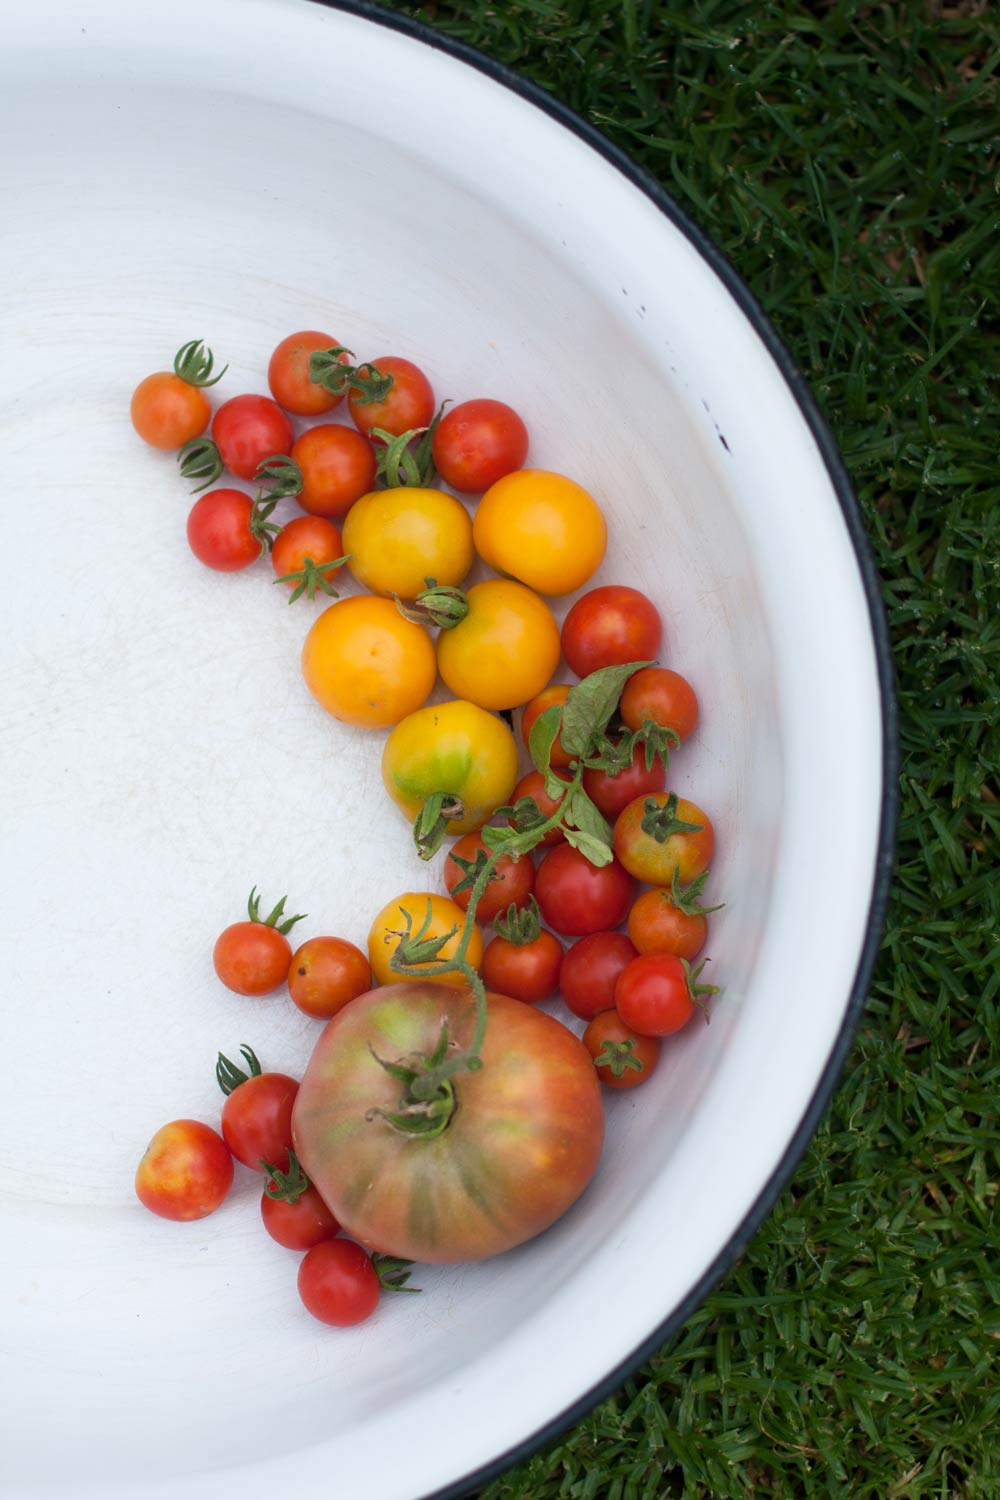 Tomatoes-Table-at-De-Meye